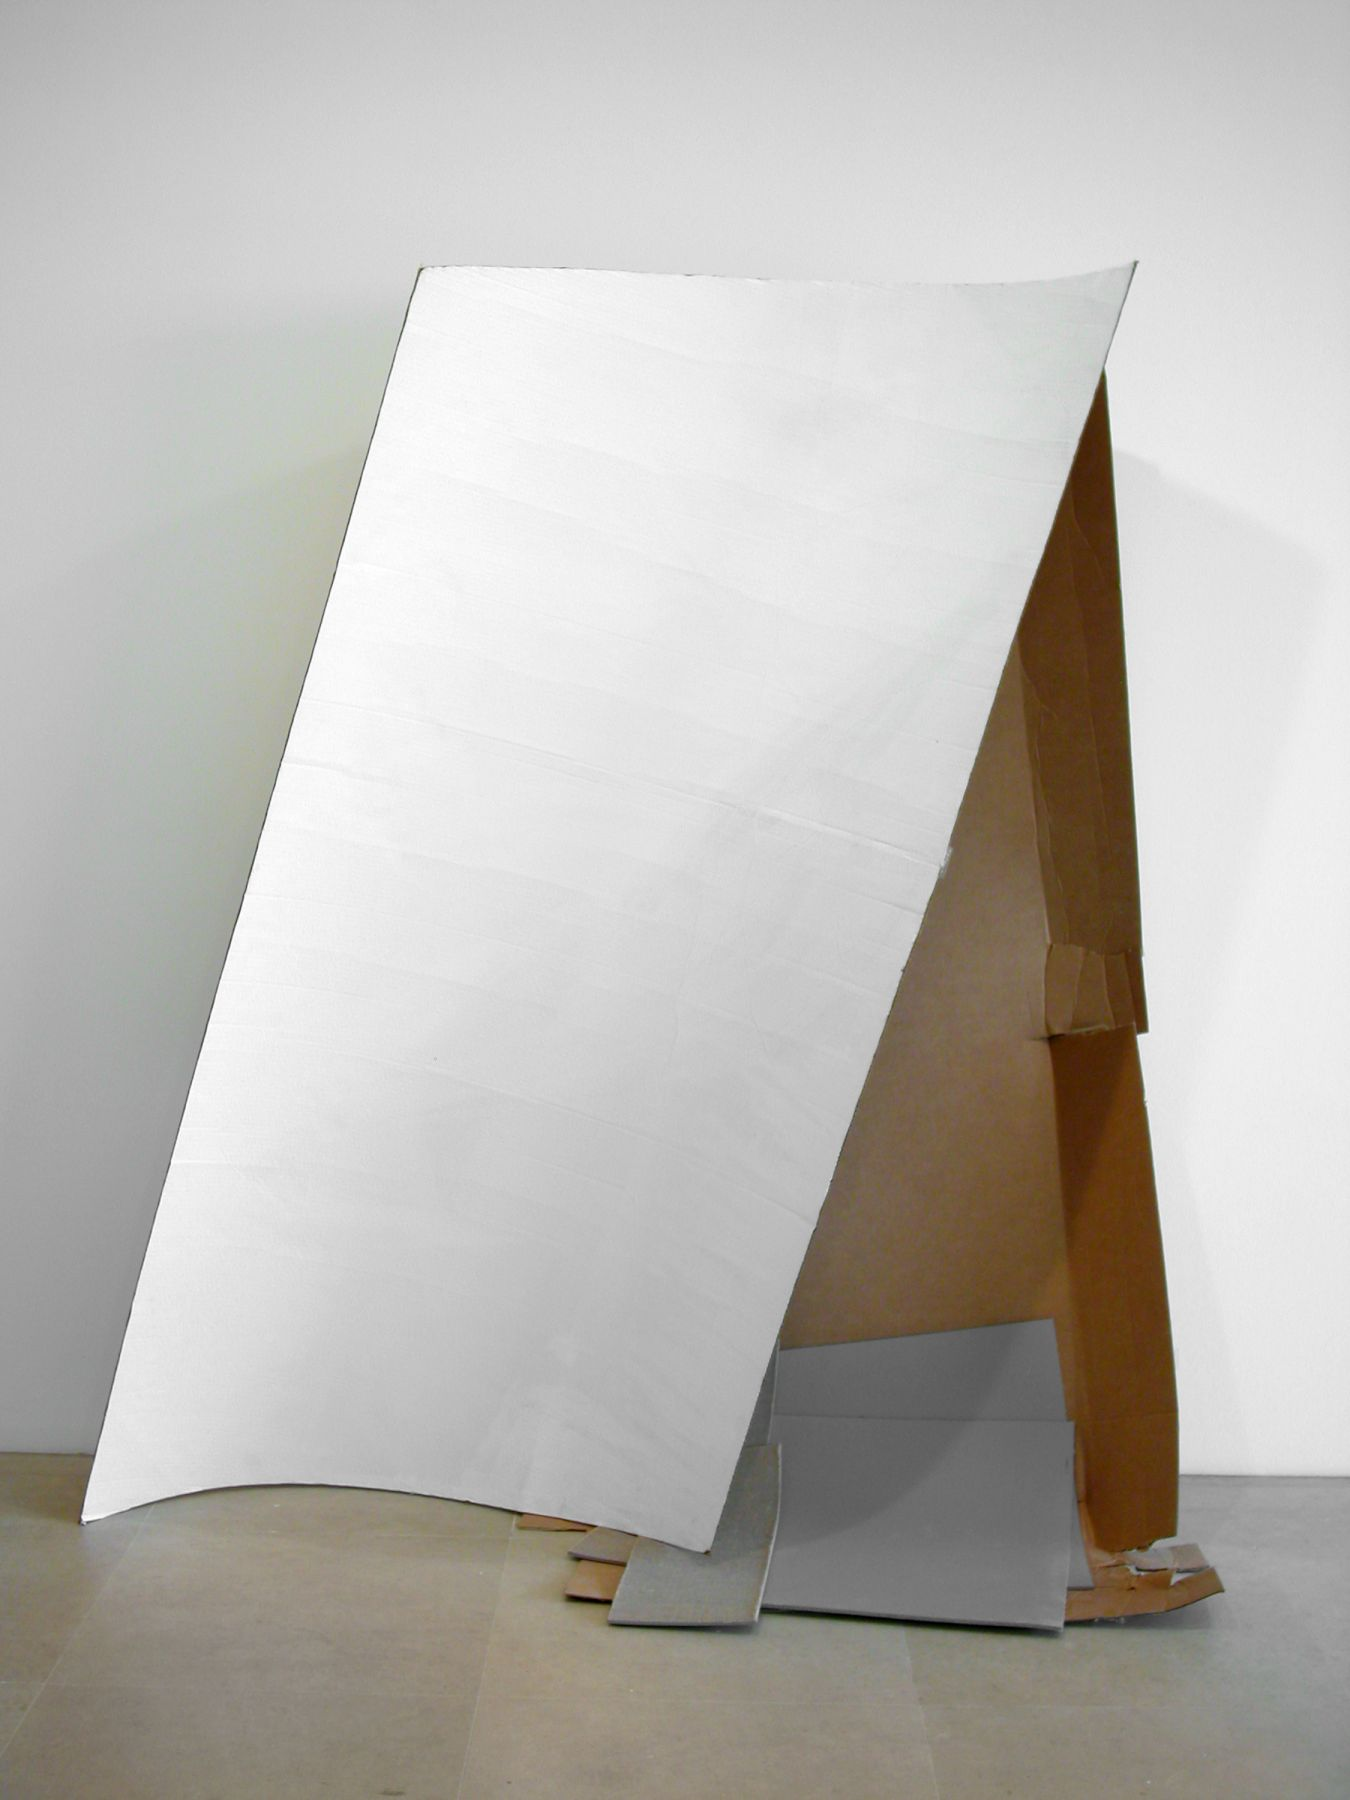 Gedi Sibony, Ultimately Even, 2005-2007, Cardboard, paint, linoleum, 80 x 30 x 74 inches